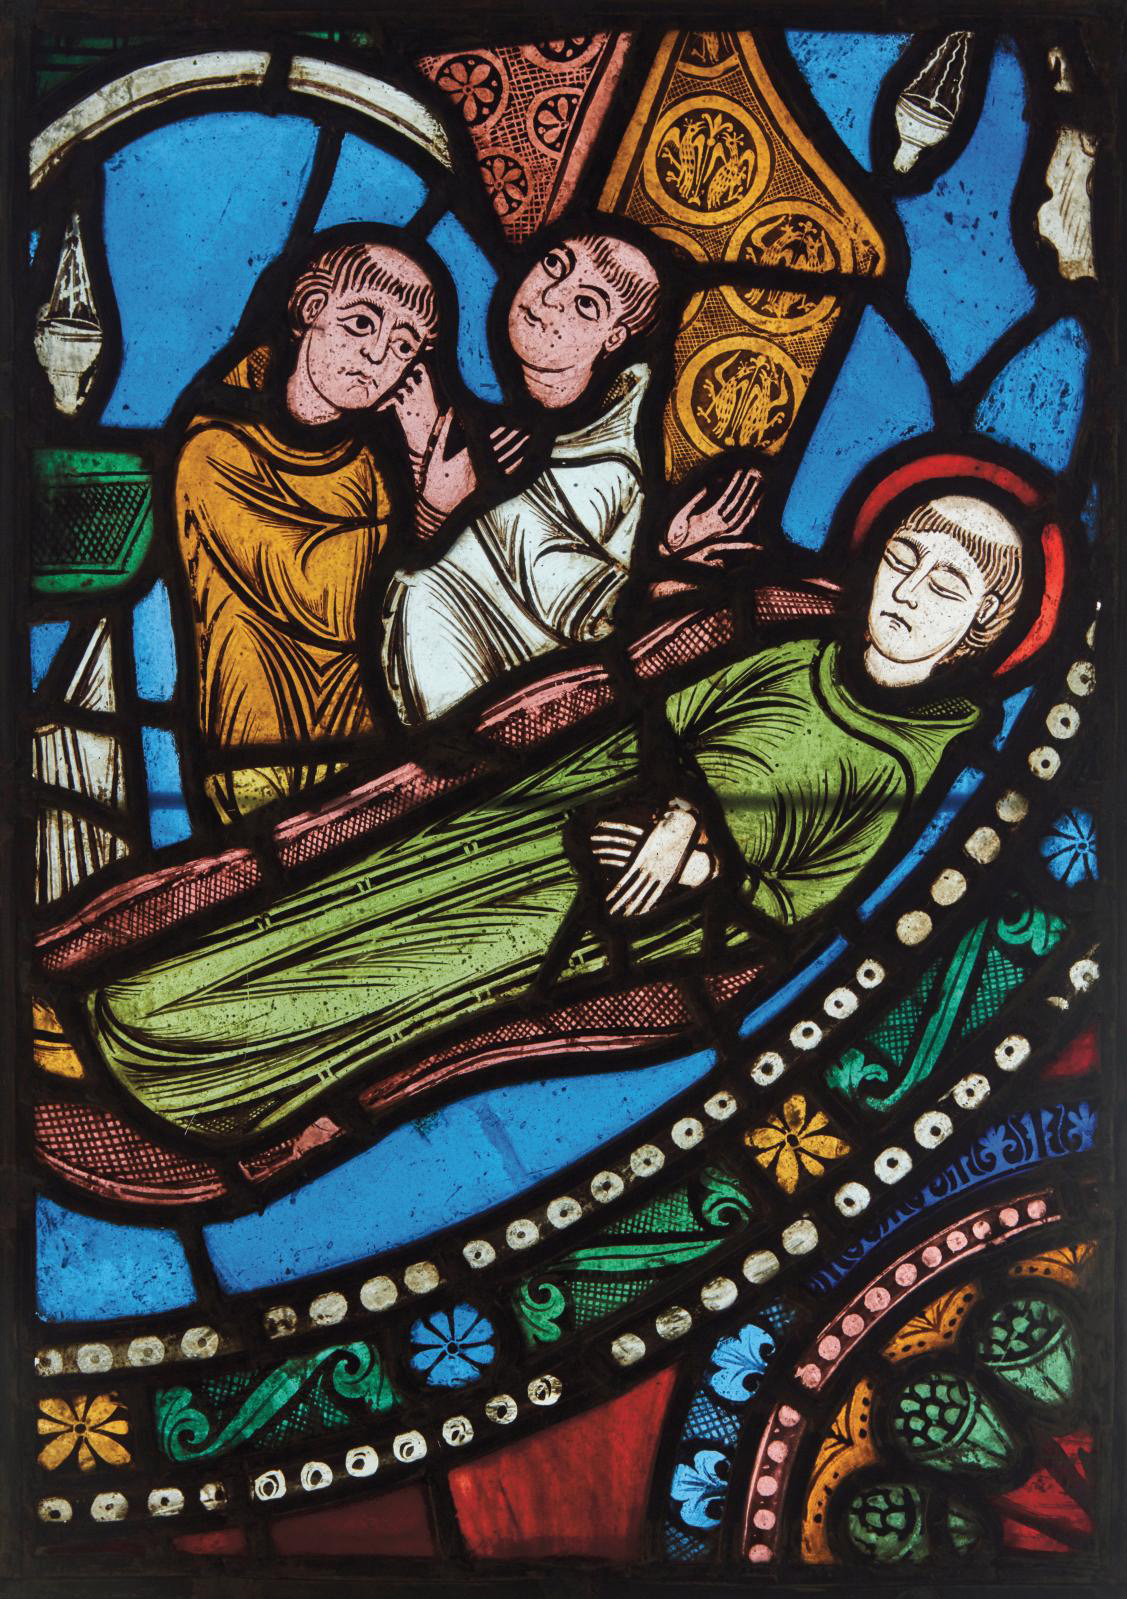 France, c. 1140-1144. Two monks watching over the body of Saint Benedict, stained glass, 44.4 x 31.3 cm (17.49 x 12.33 in). Photo Pierre Bergé & Associés